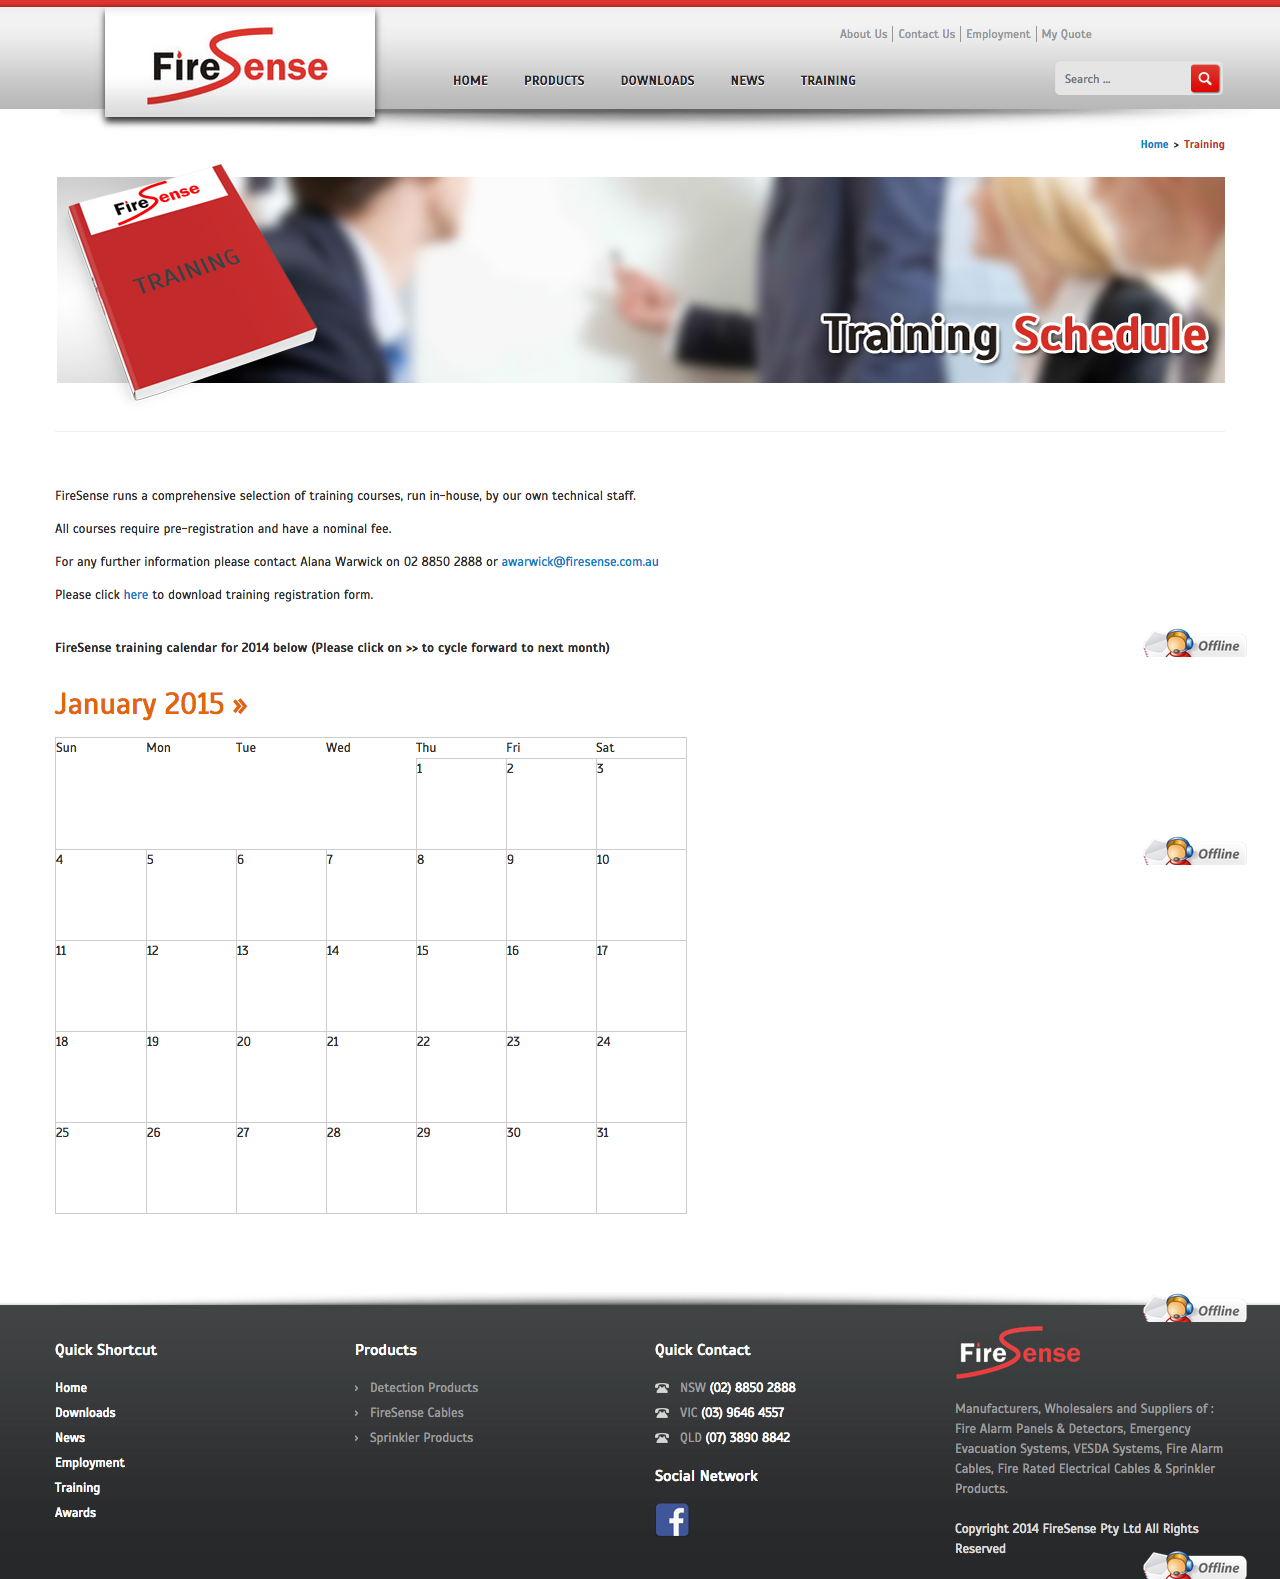 Check out FireSense - Product Catalogue - Training to know how our web developers and web design Sydney team to help your online marketing, SEO, SEM, social marketing and web development.